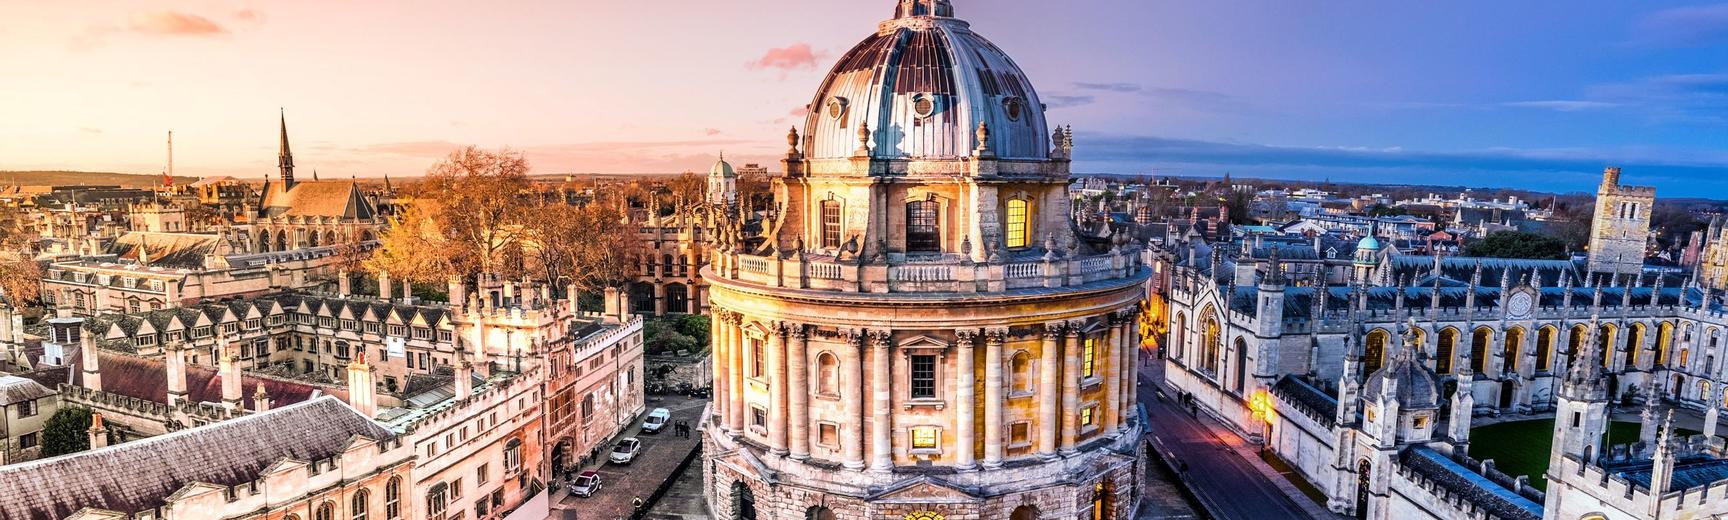 panoramic view of radcliffe square